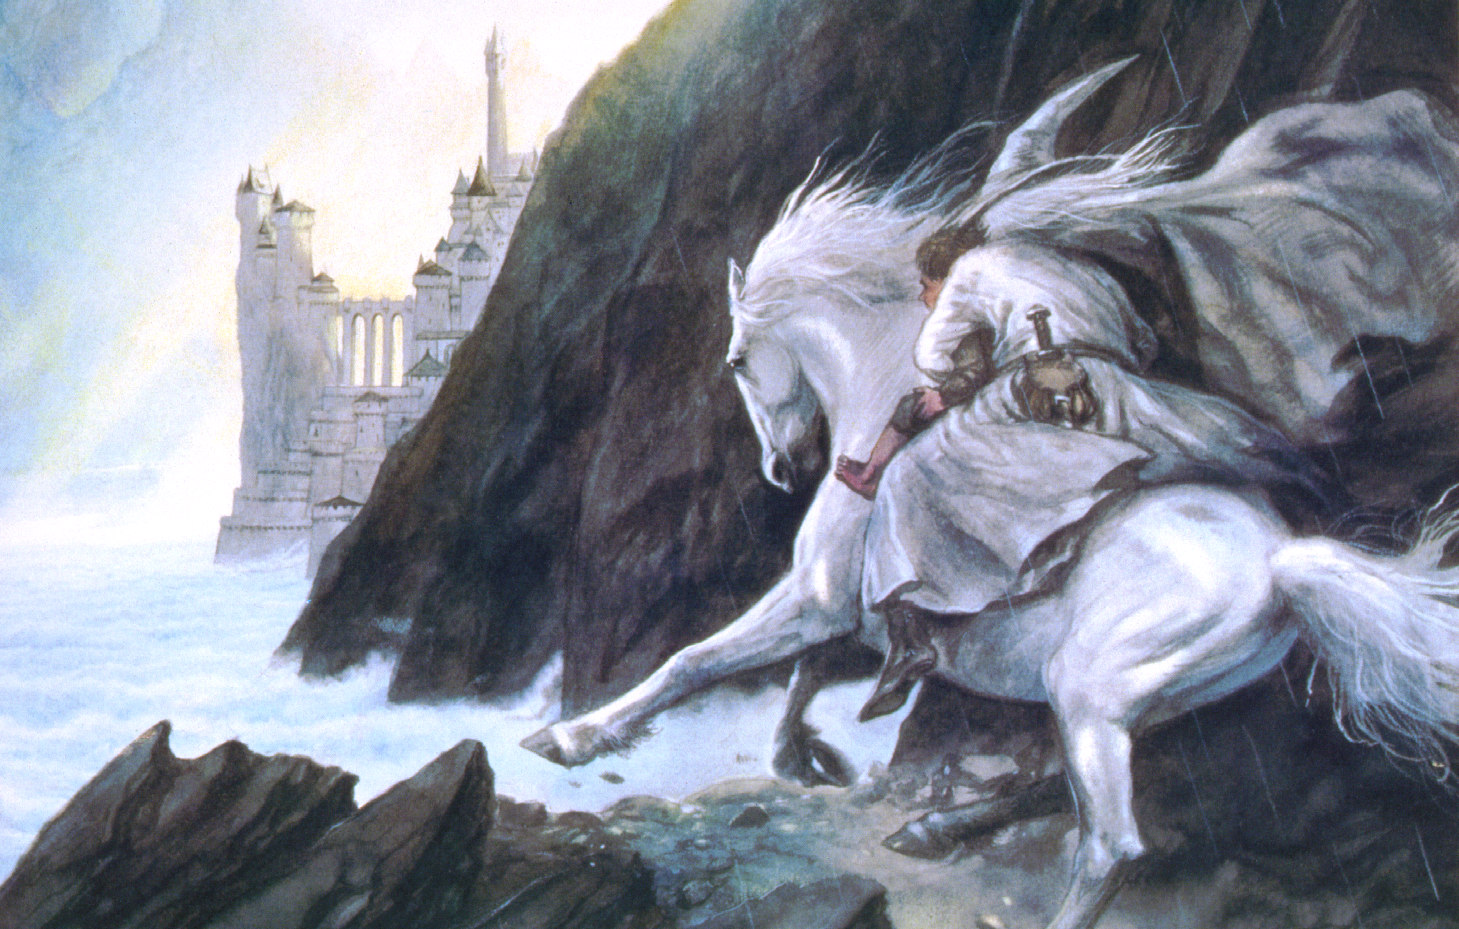 http://www.nasha-lavochka.ru/images/john_howe/gandalf_guarded_city.jpg